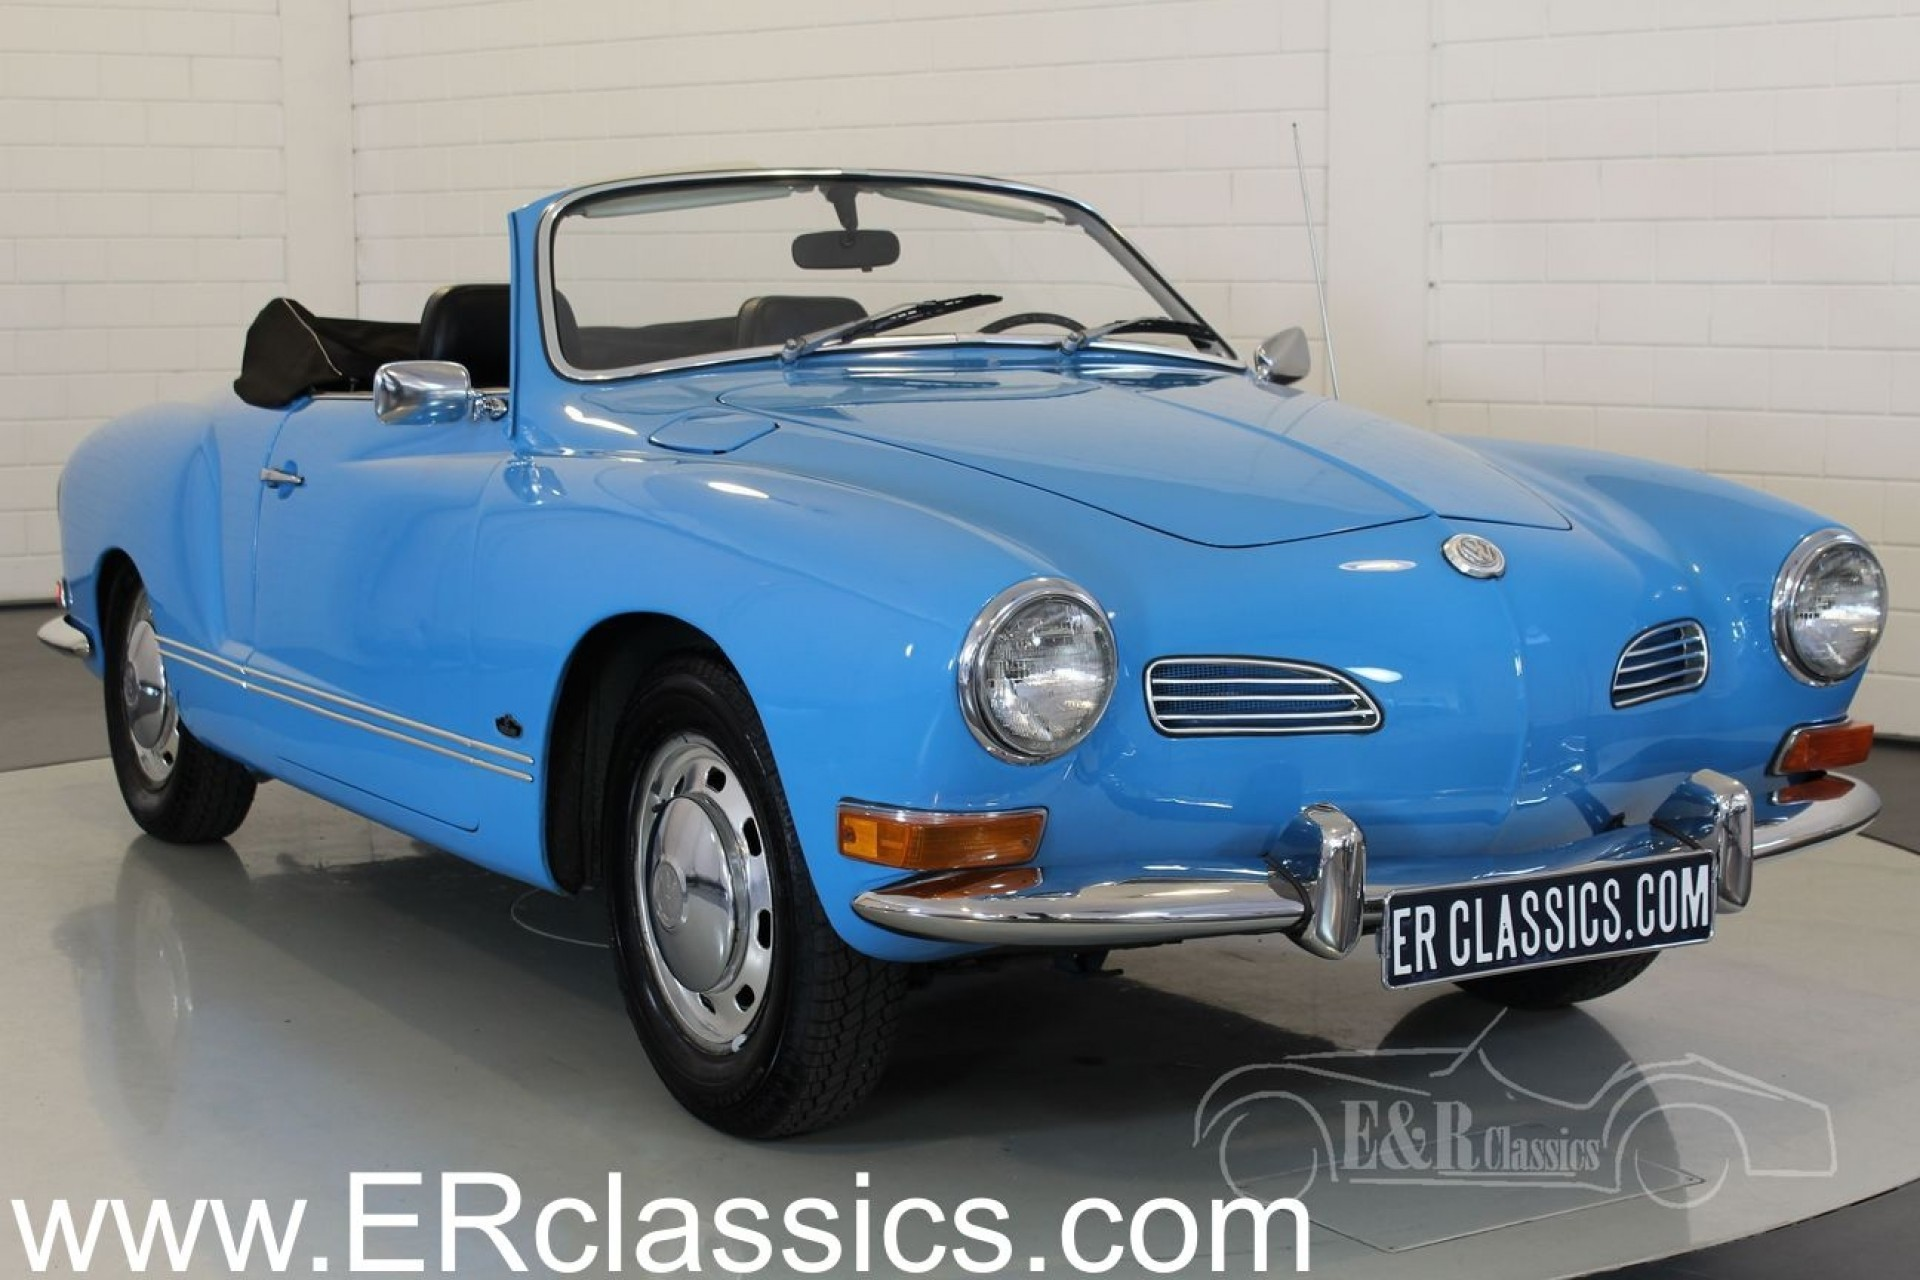 vw karmann ghia cabriolet 1970 vendre erclassics. Black Bedroom Furniture Sets. Home Design Ideas